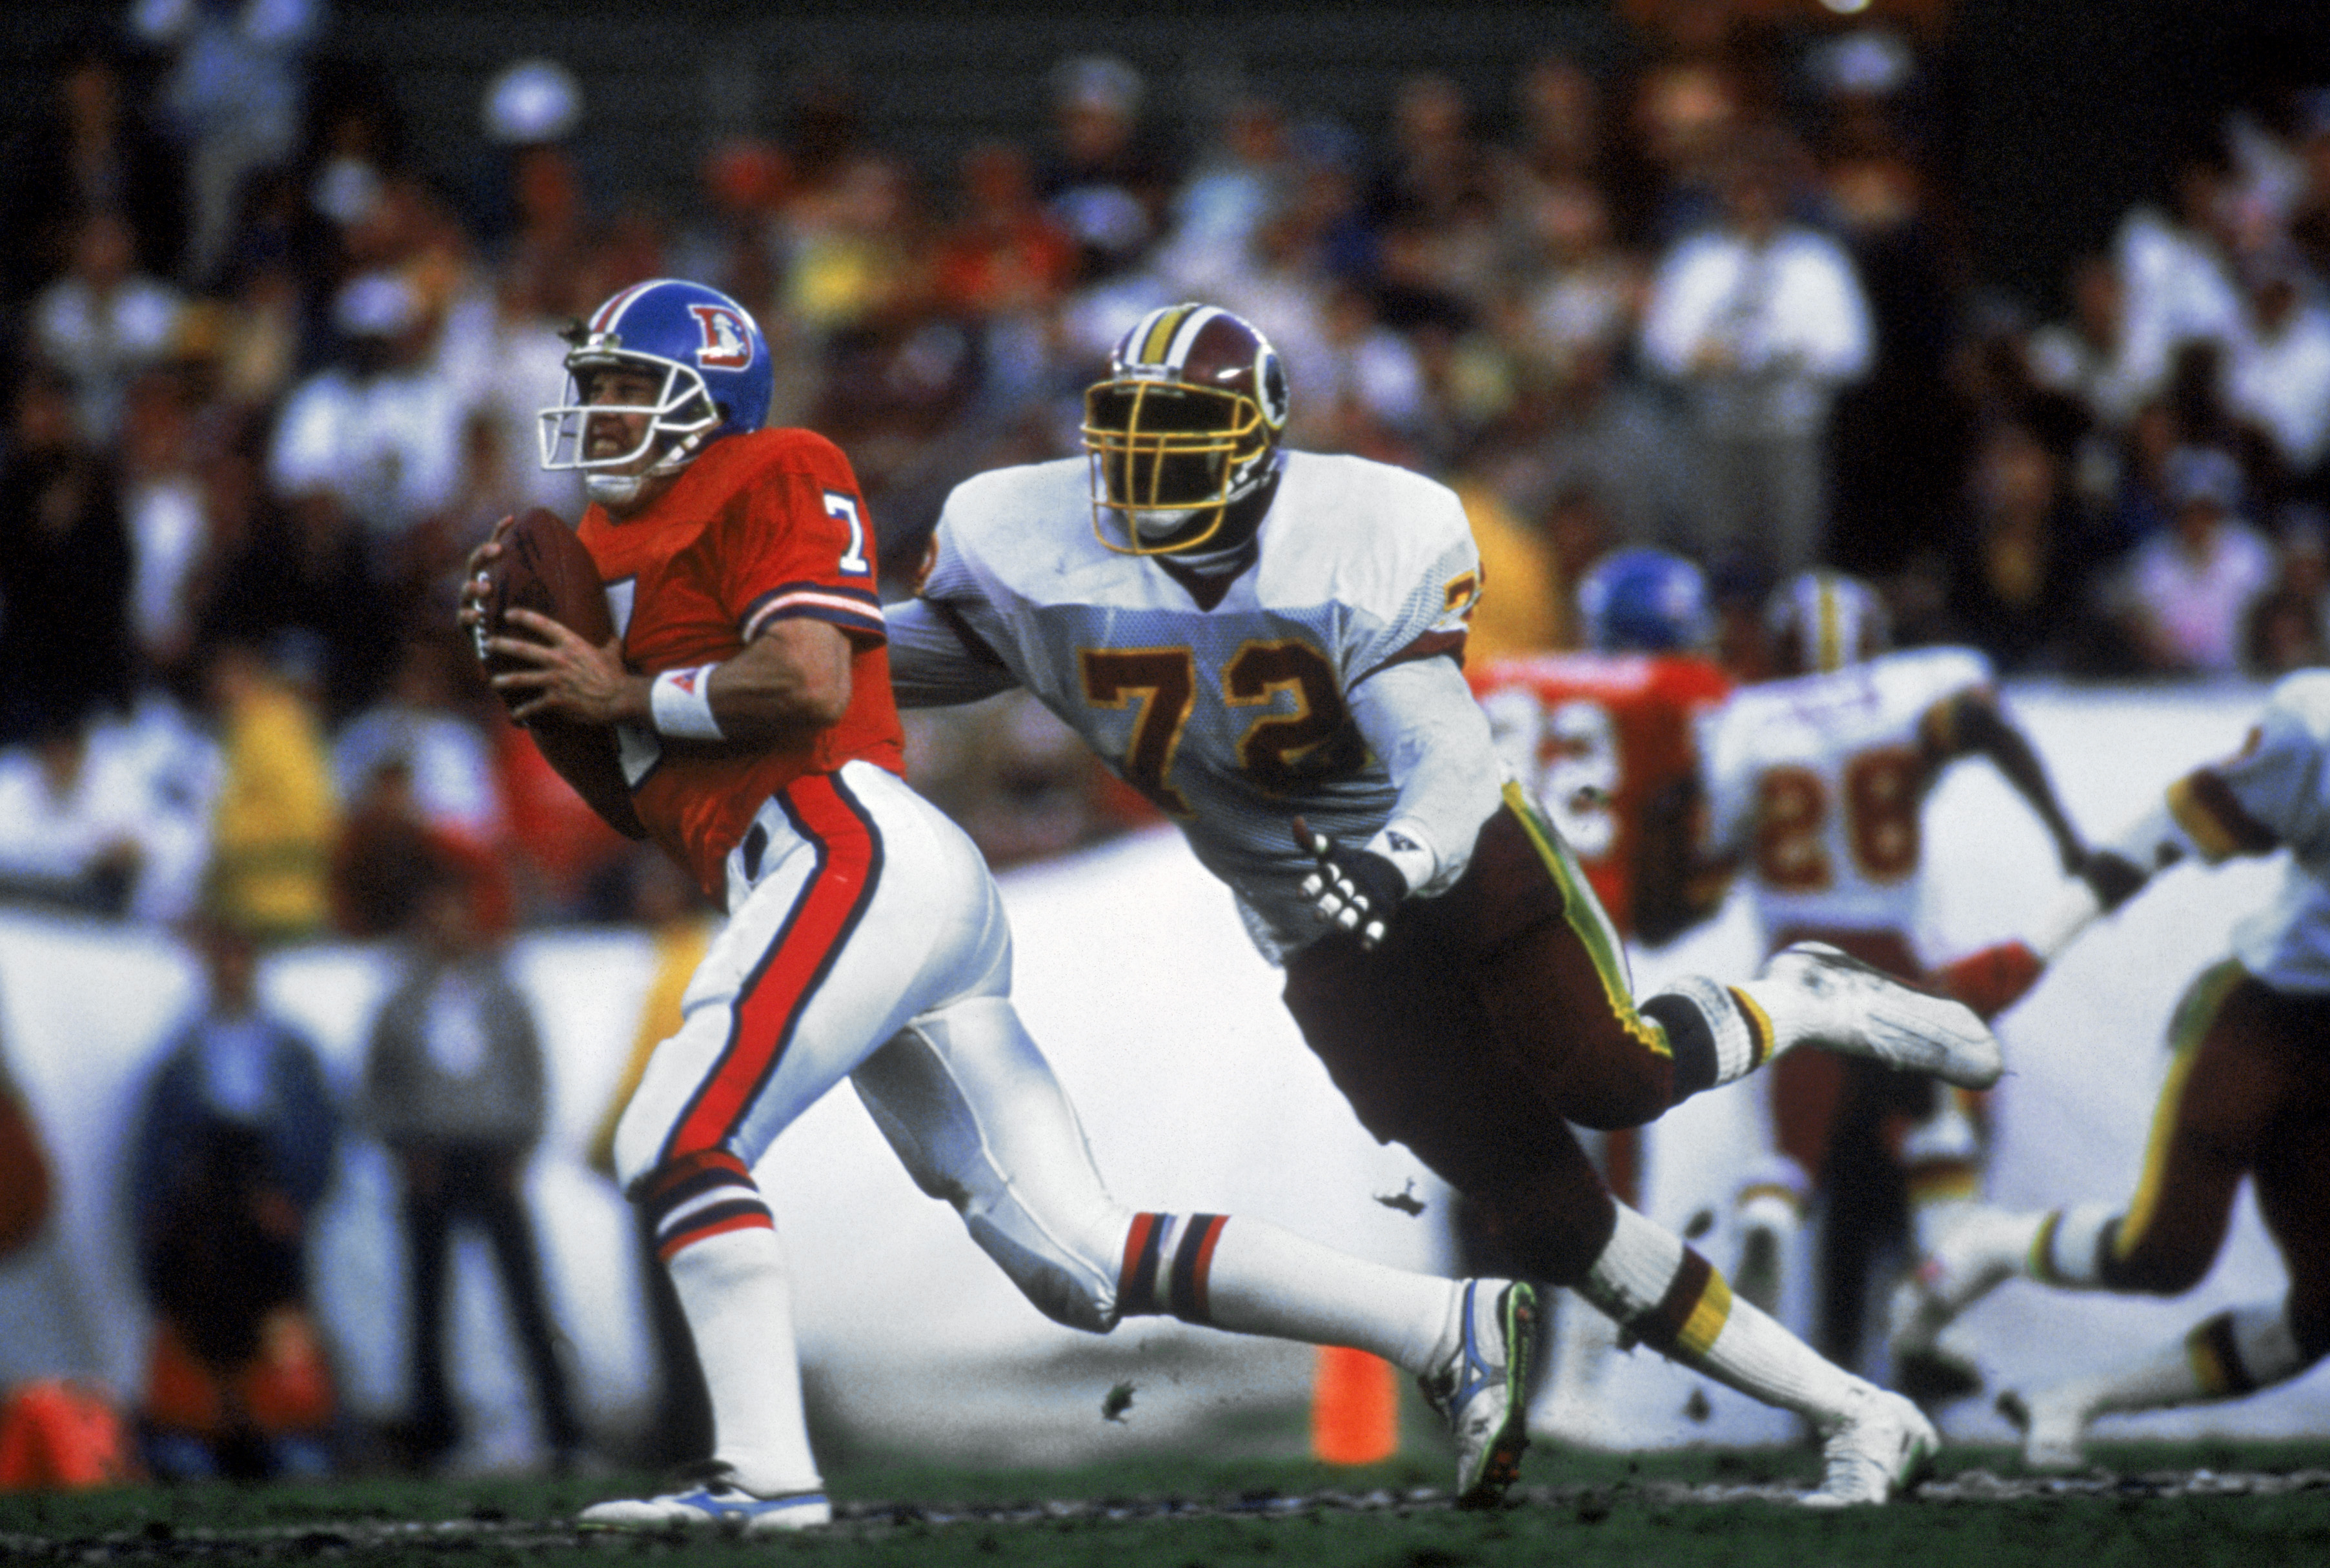 SAN DIEGO - JANUARY 31:  Quarterback John Elway #7 of the Denver Broncos tries to avoid an onrushing Dexter Manley #72 of the Washington Redskins during Superbowl XXII on January 31, 1988 at San Diego Jack Murphy Stadium in San Diego, California.  The Red